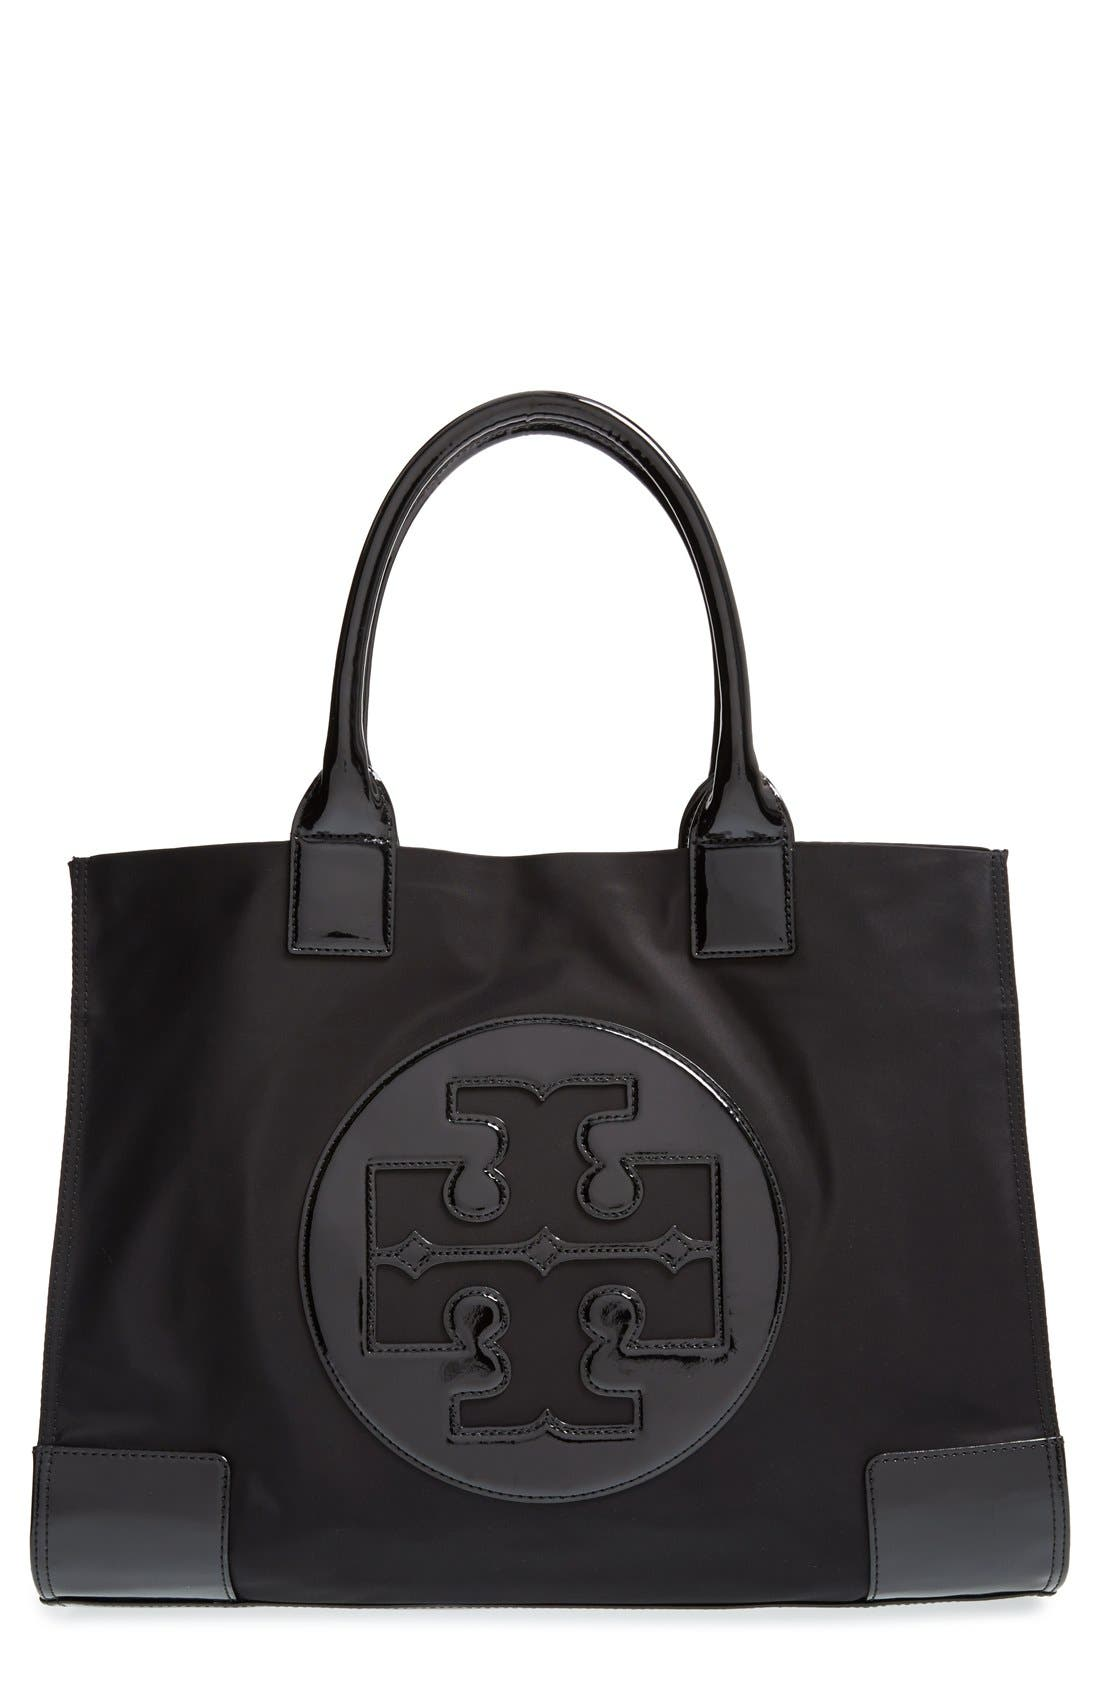 'Ella' Nylon Tote,                             Main thumbnail 1, color,                             BLACK/ BLACK